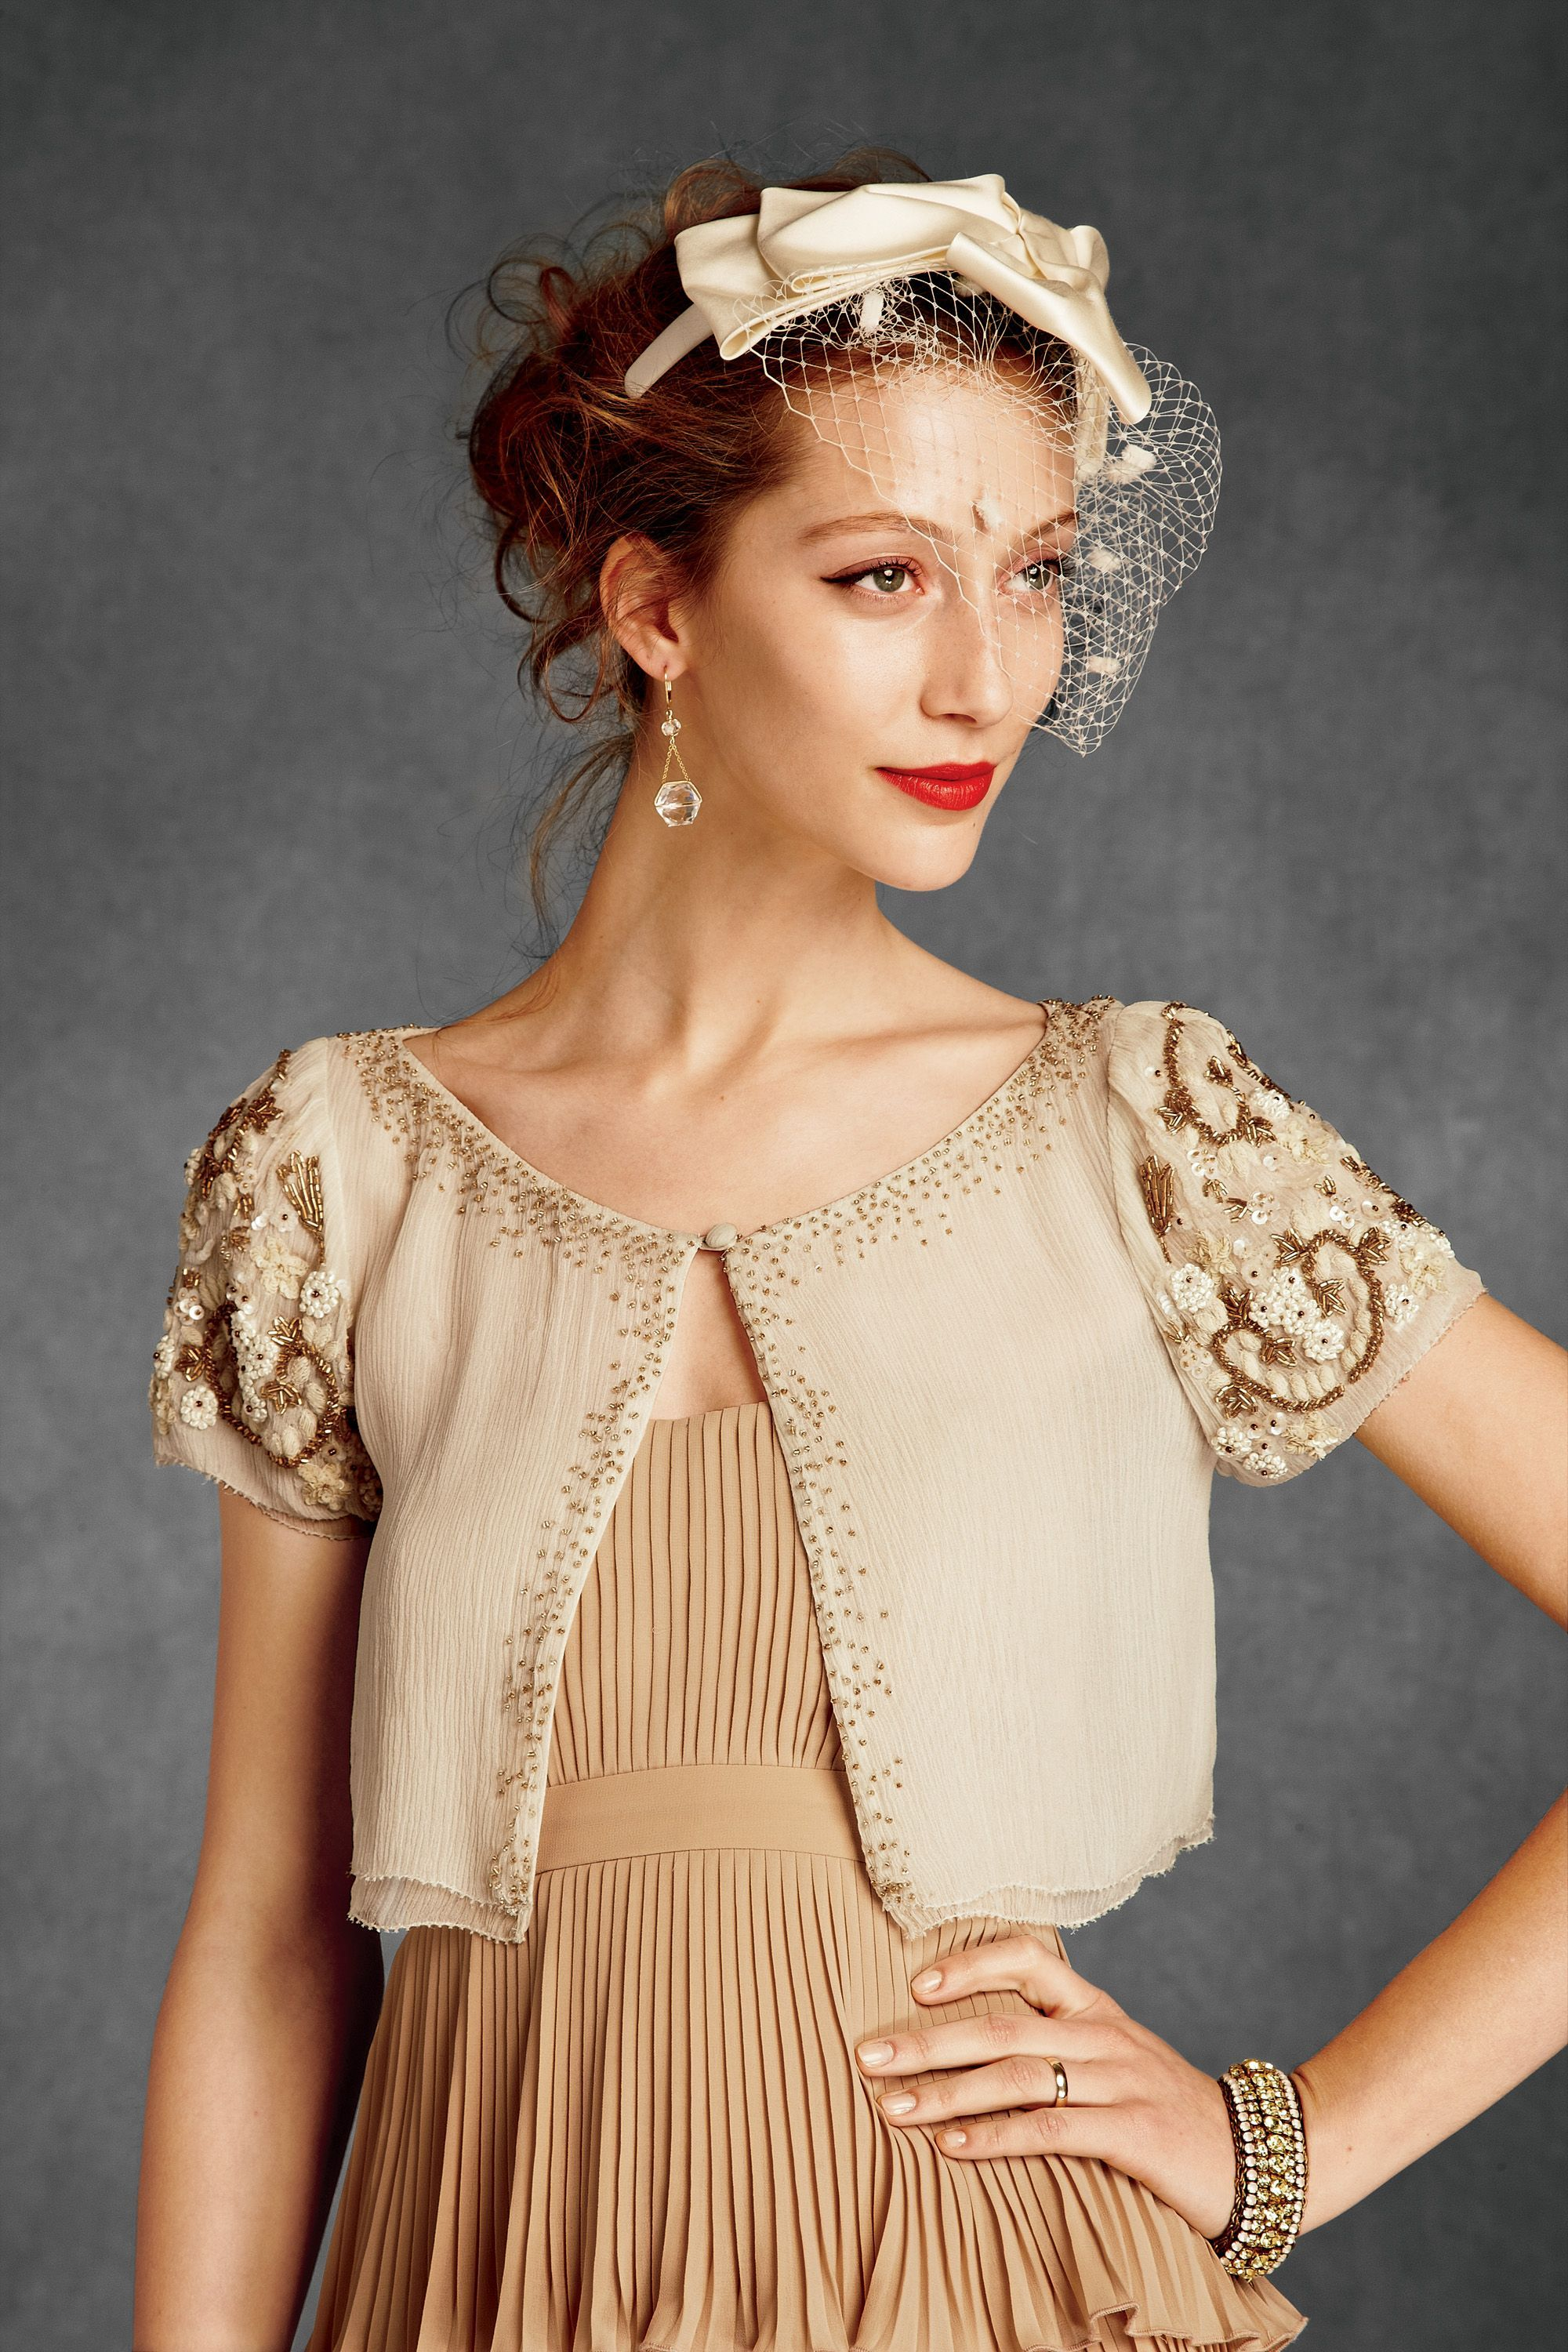 Just love this look as a whole! 